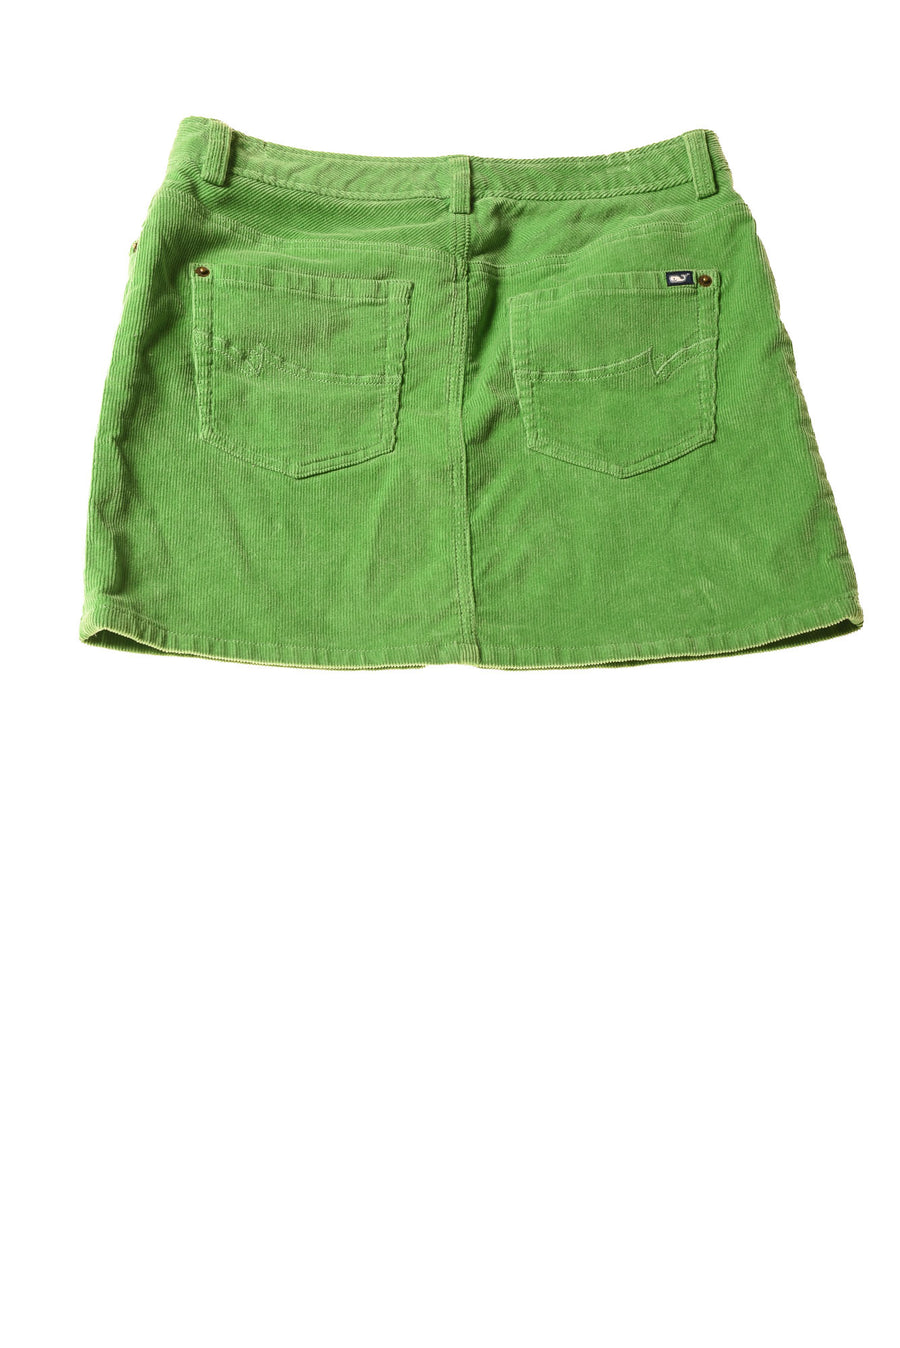 NEW Vineyard Vines Women's Skirt By Vineyard Vines 2 Green